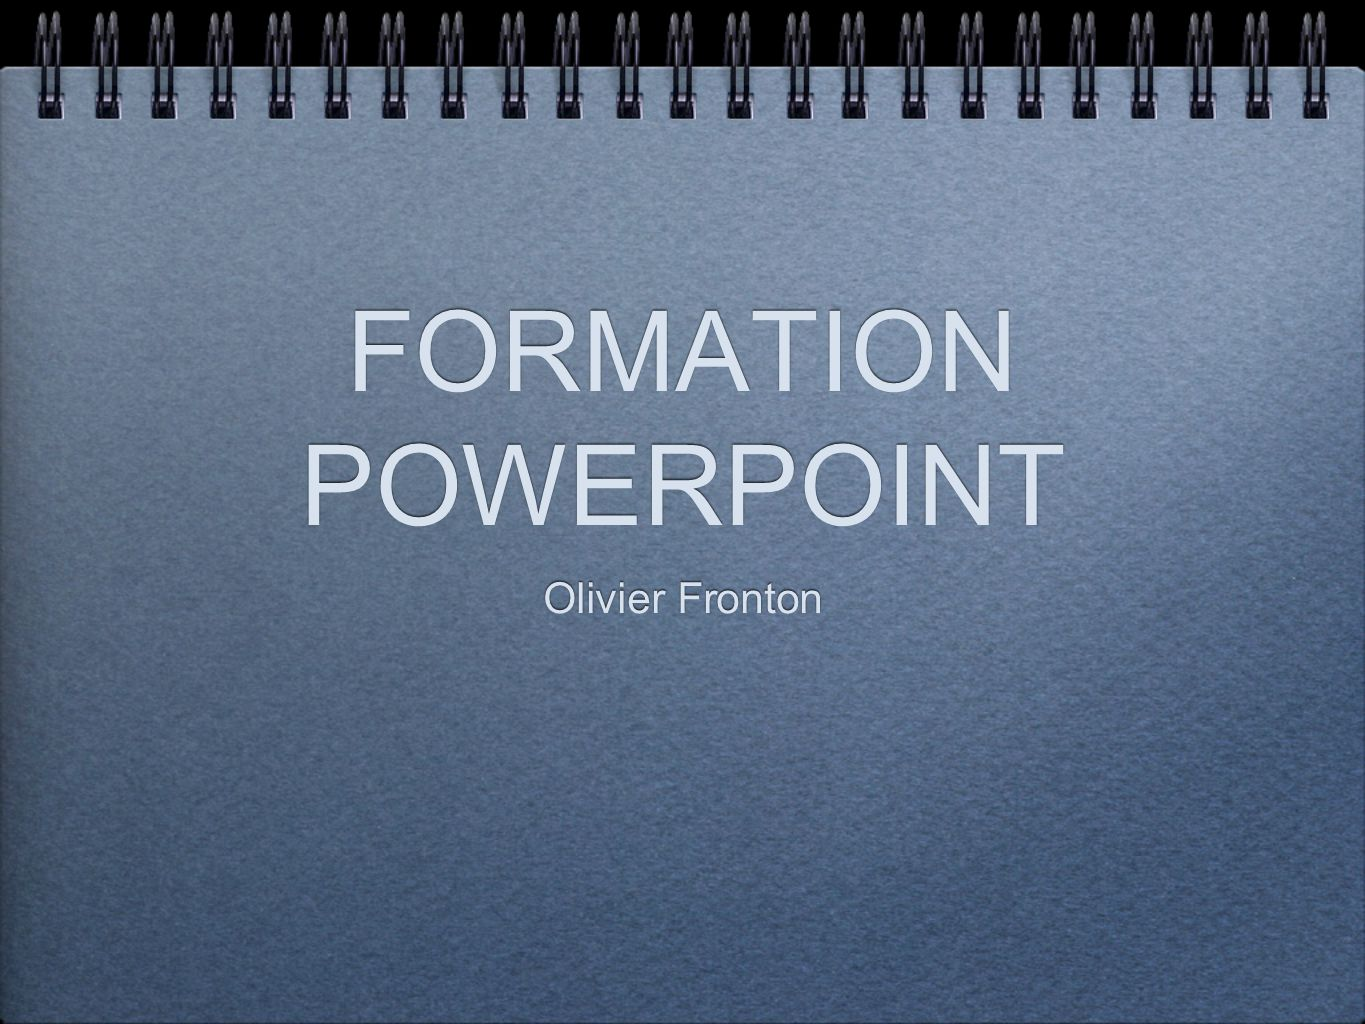 FORMATION POWERPOINT Olivier Fronton